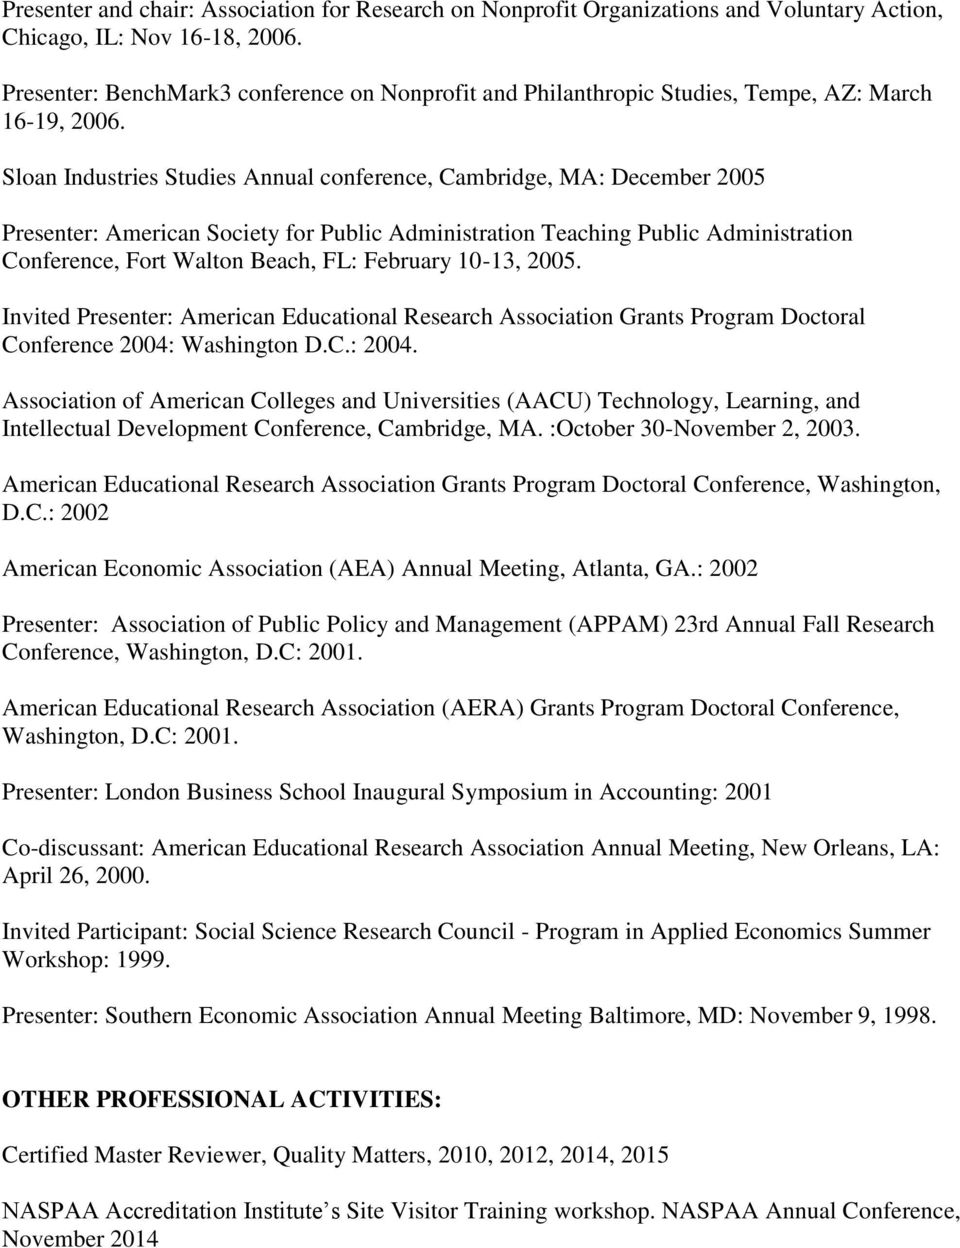 Sloan Industries Studies Annual conference, Cambridge, MA: December 2005 Presenter: American Society for Public Administration Teaching Public Administration Conference, Fort Walton Beach, FL: